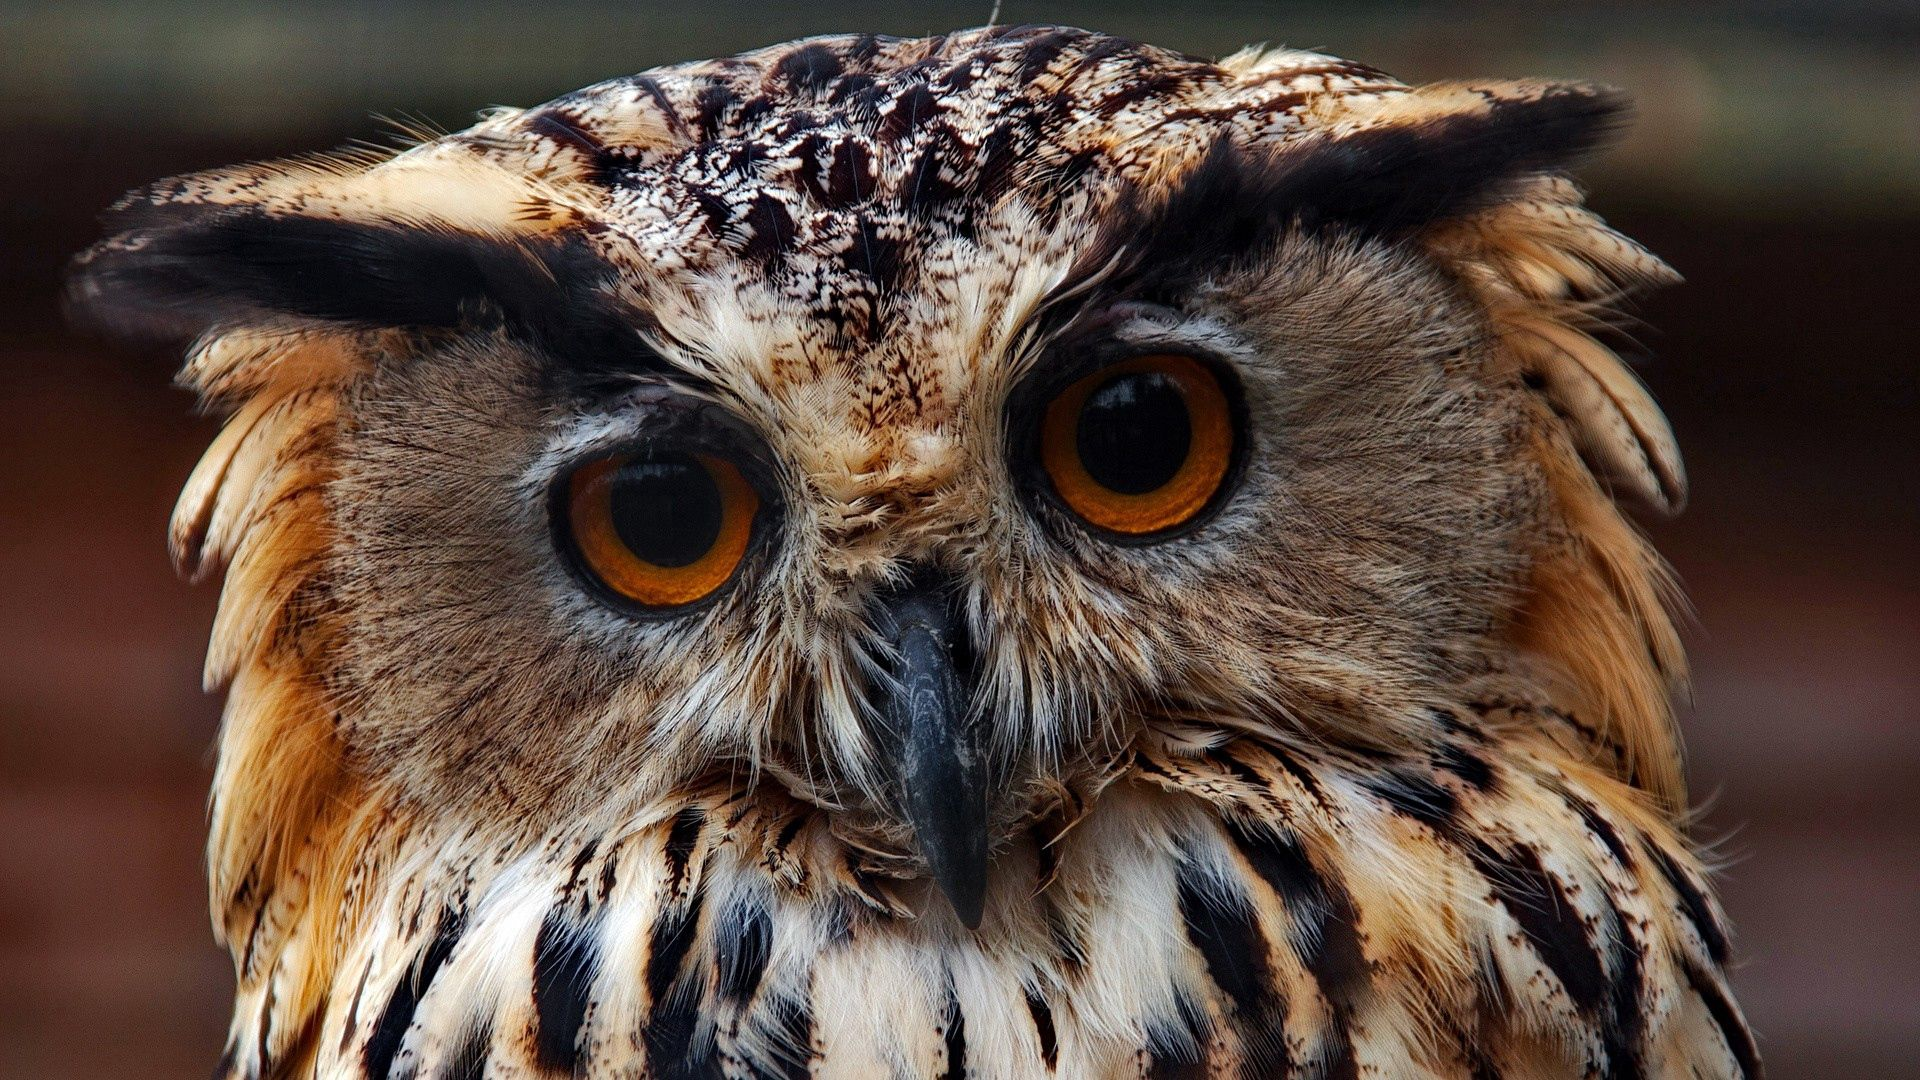 139521 Screensavers and Wallpapers Owl for phone. Download Animals, Owl, Muzzle, Close-Up, Predator pictures for free